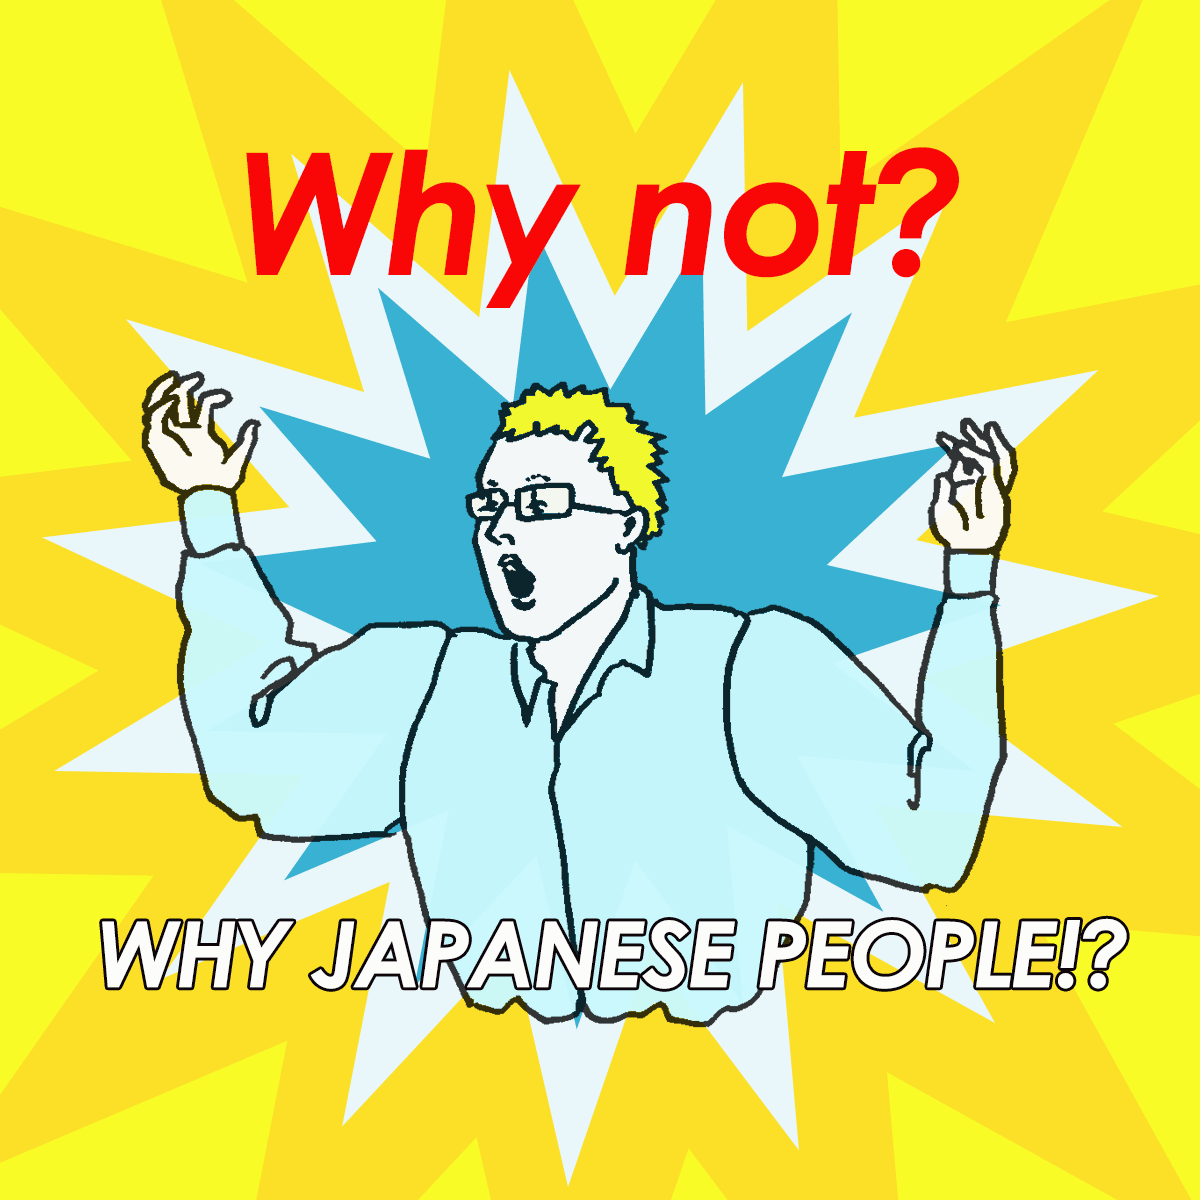 WHY JAPANESE PEOPLE!?